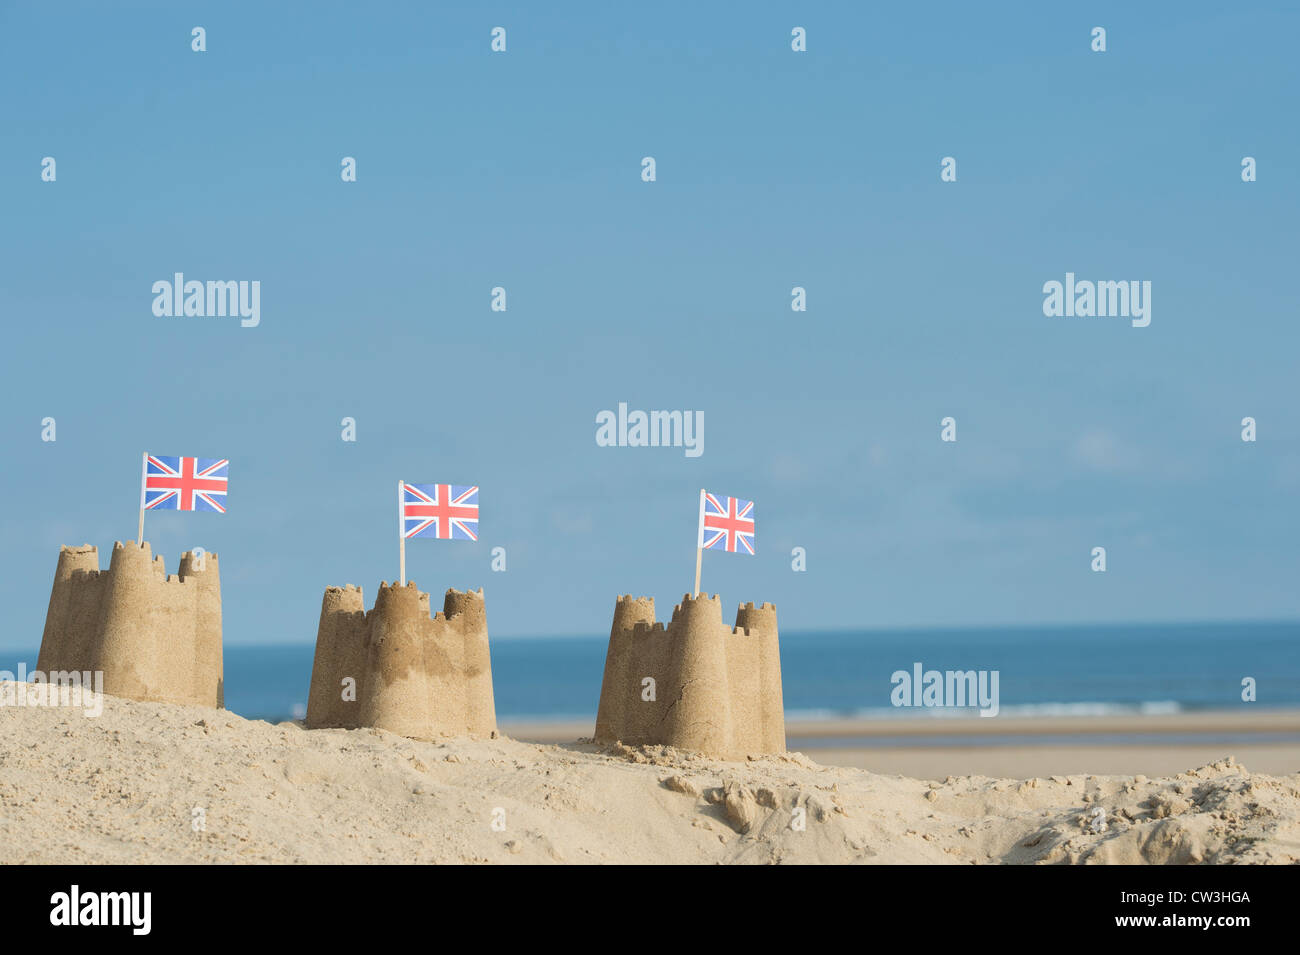 Union Jack flags in sandcastles on a sand dune. Wells next the sea. Norfolk, England - Stock Image